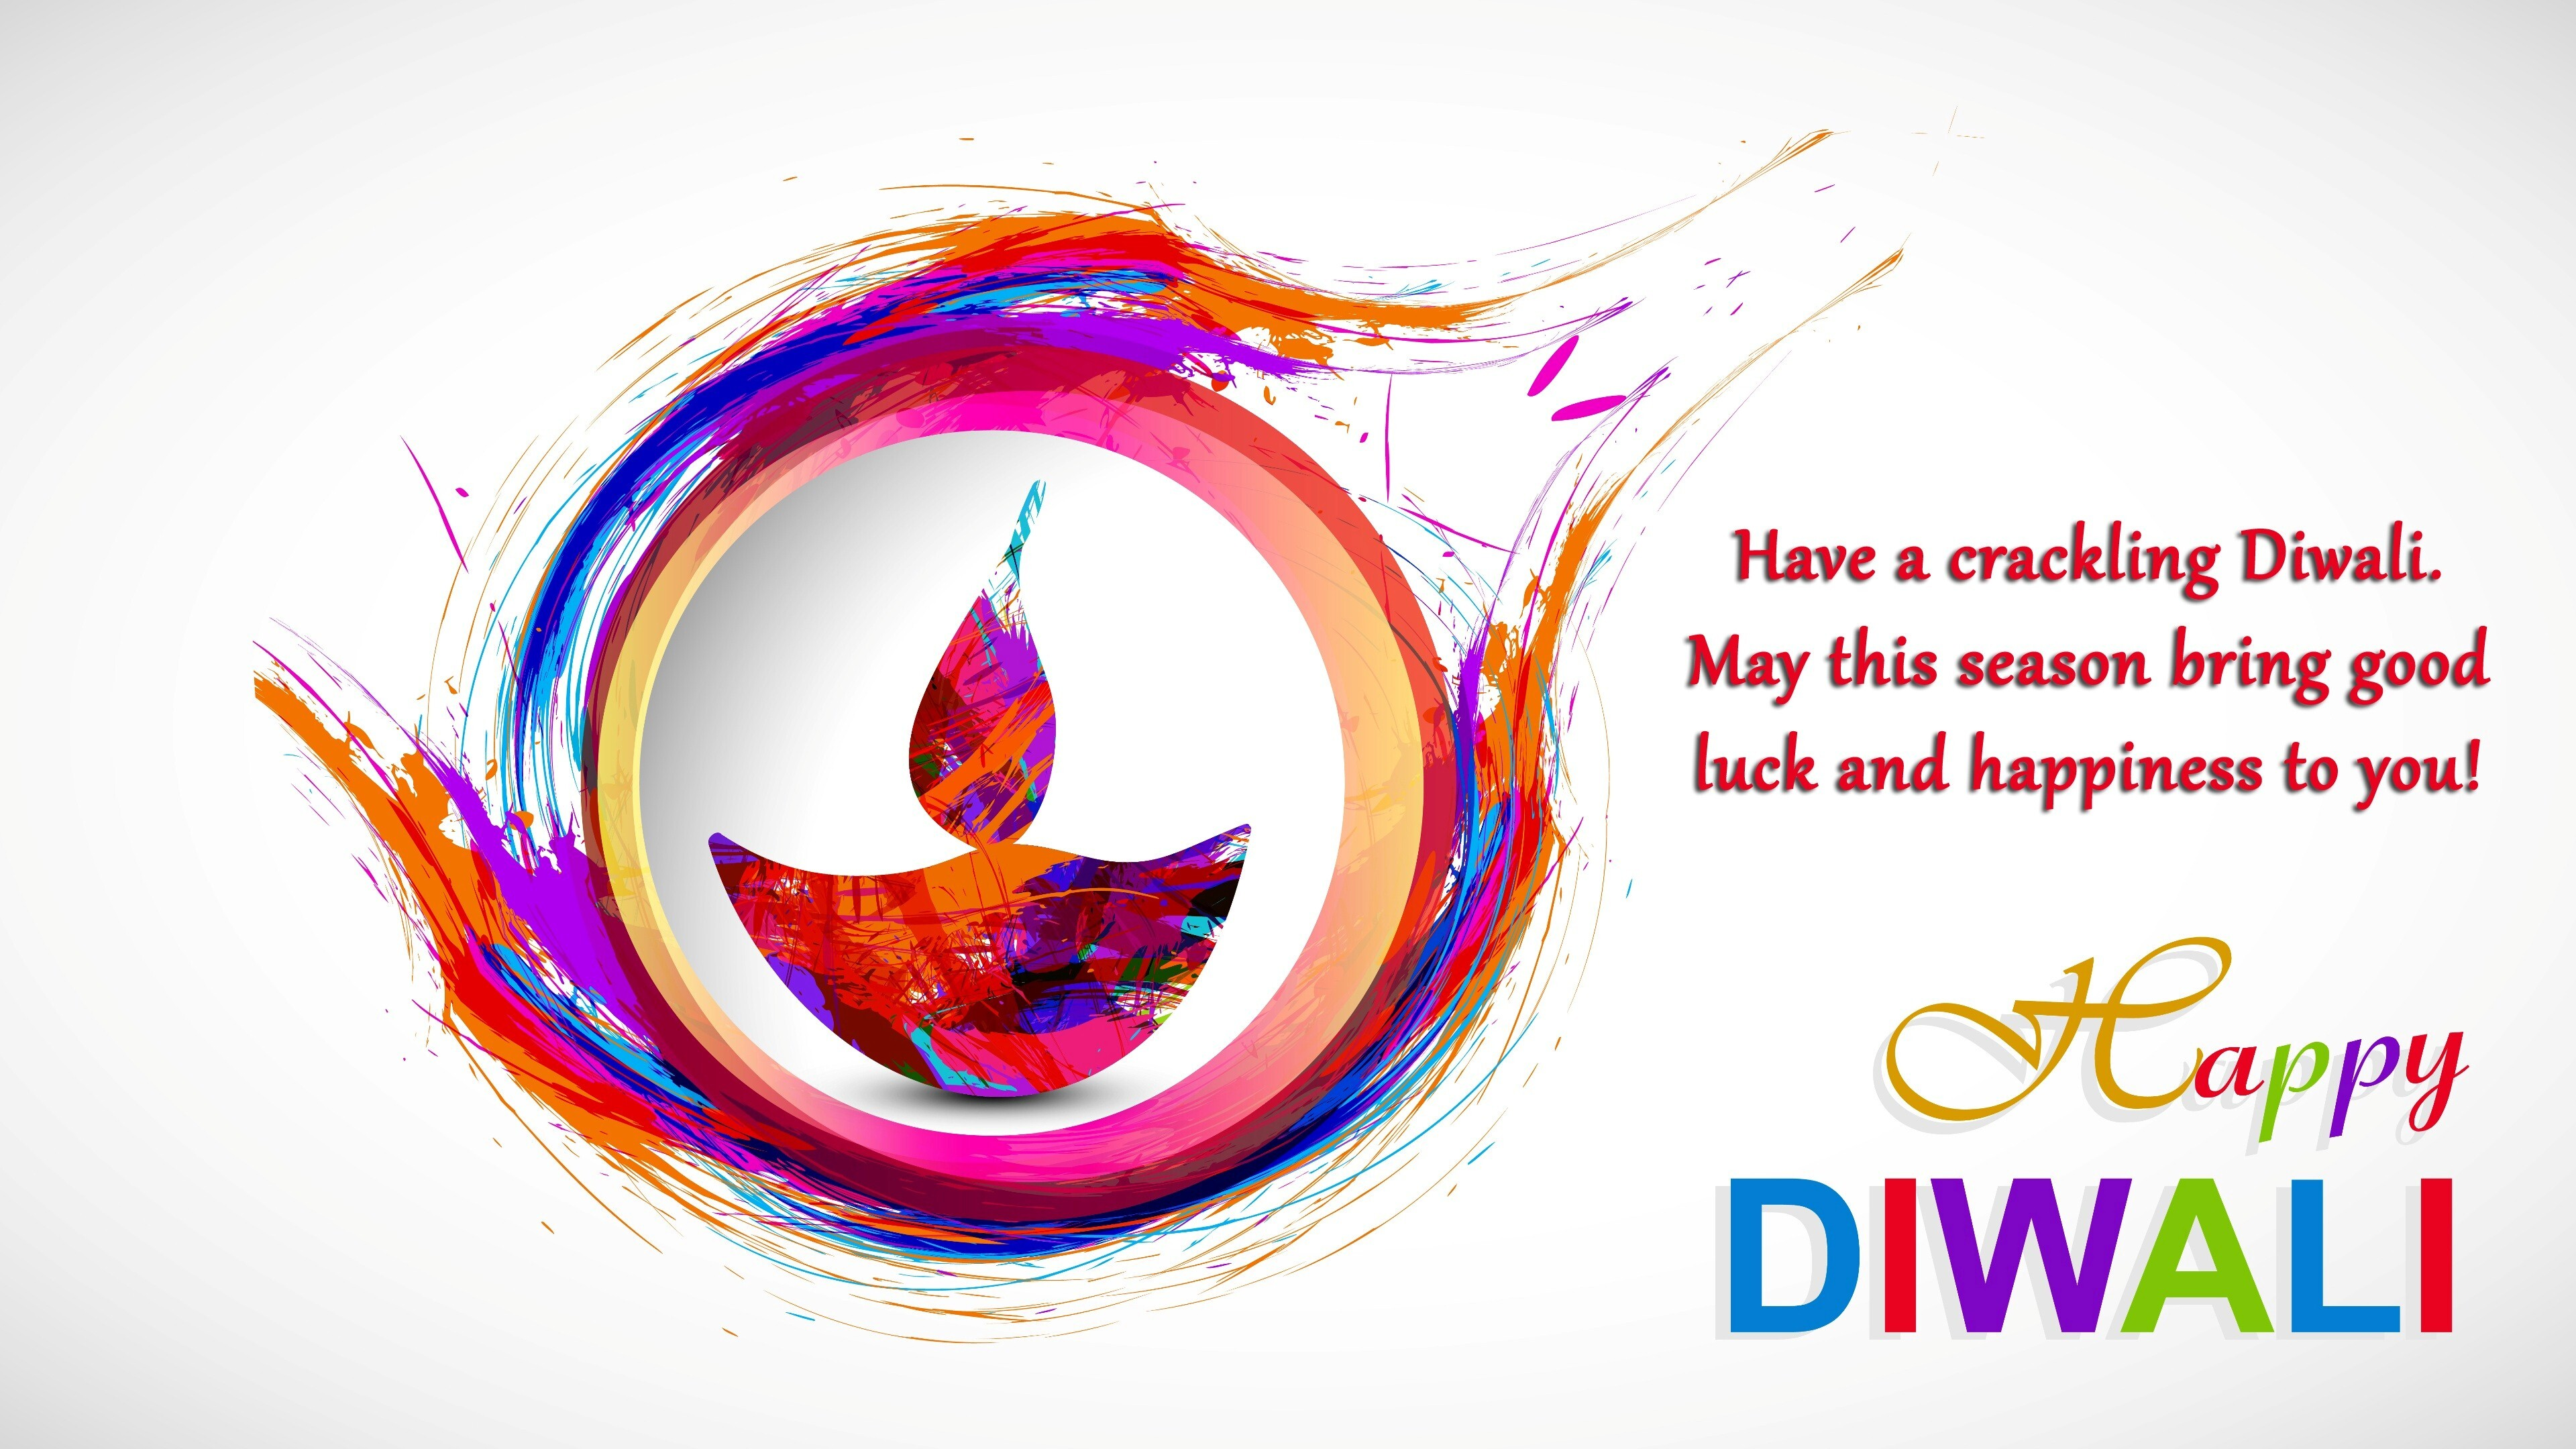 Happy Diwali Colorful Hd Wallpapers Hd Wallpapers